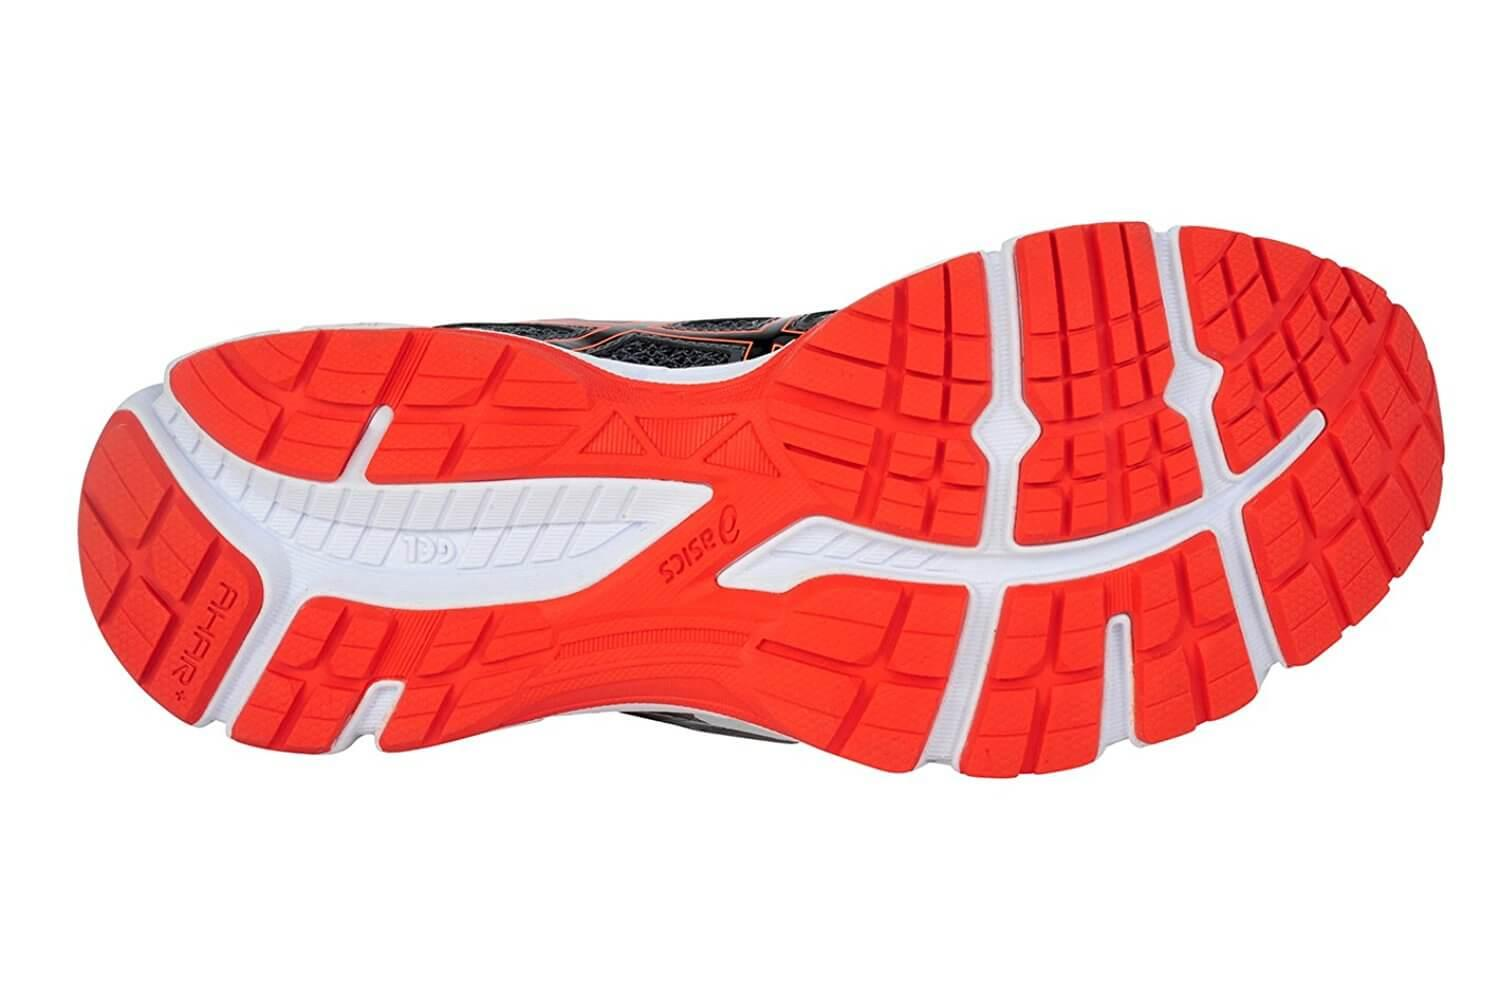 ASICS Gel Excite 3. Outsole